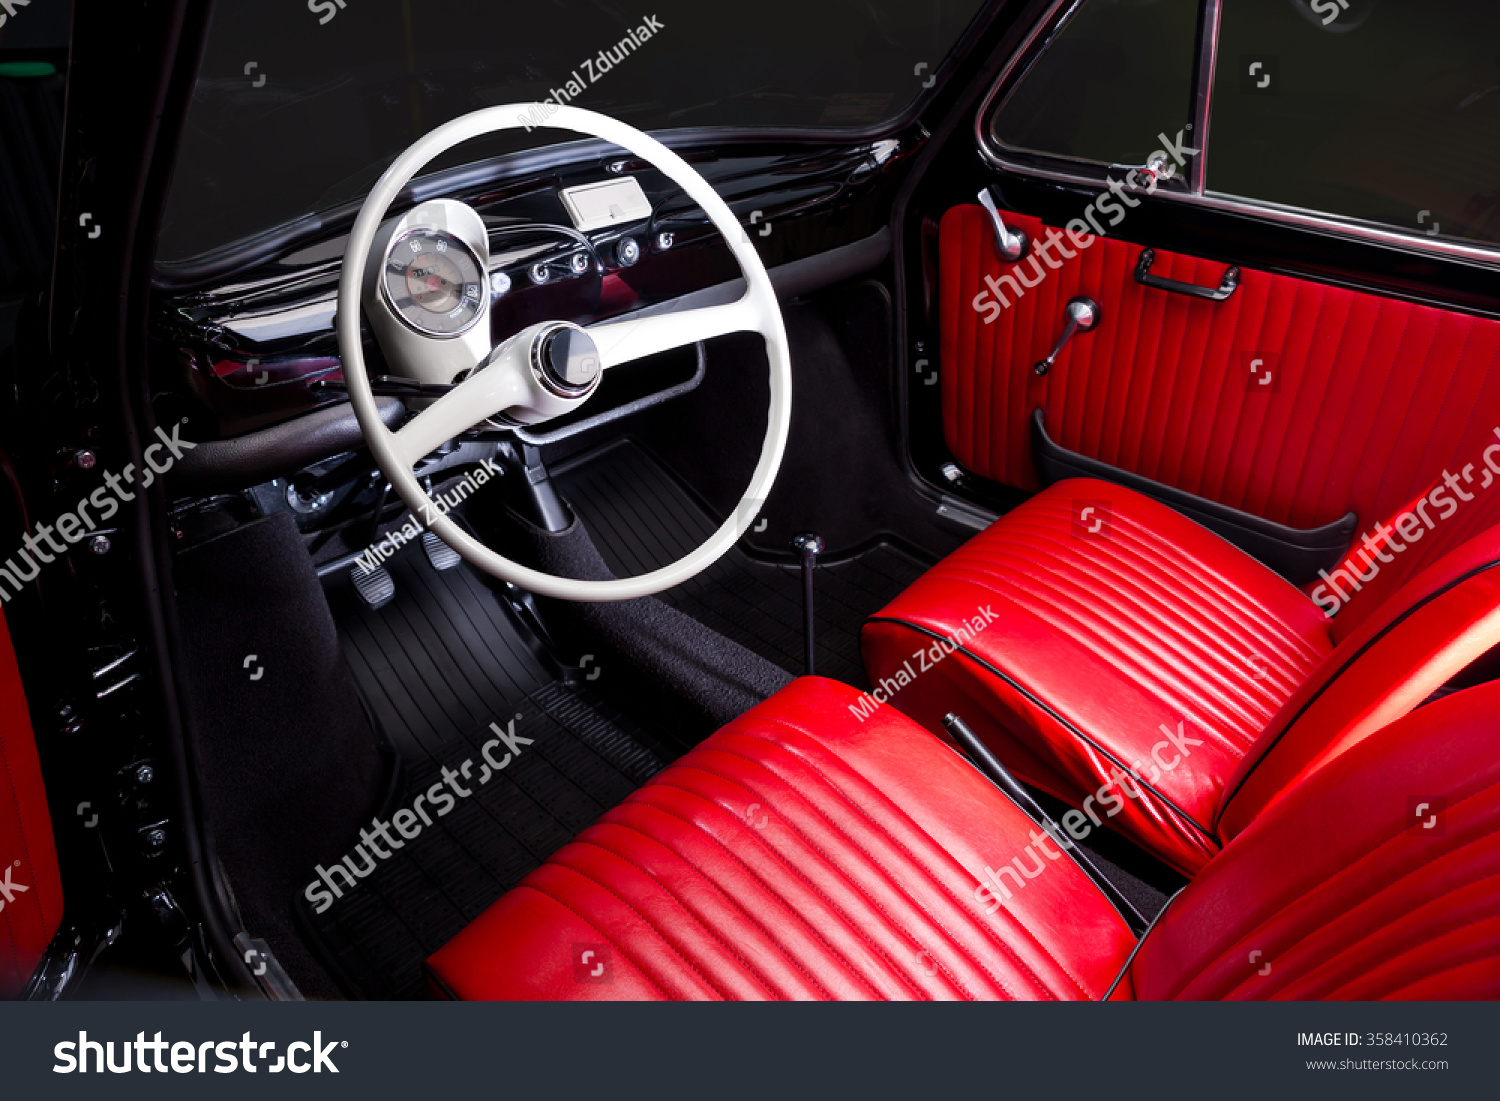 classic car interior red leather stock photo 358410362 shutterstock. Black Bedroom Furniture Sets. Home Design Ideas